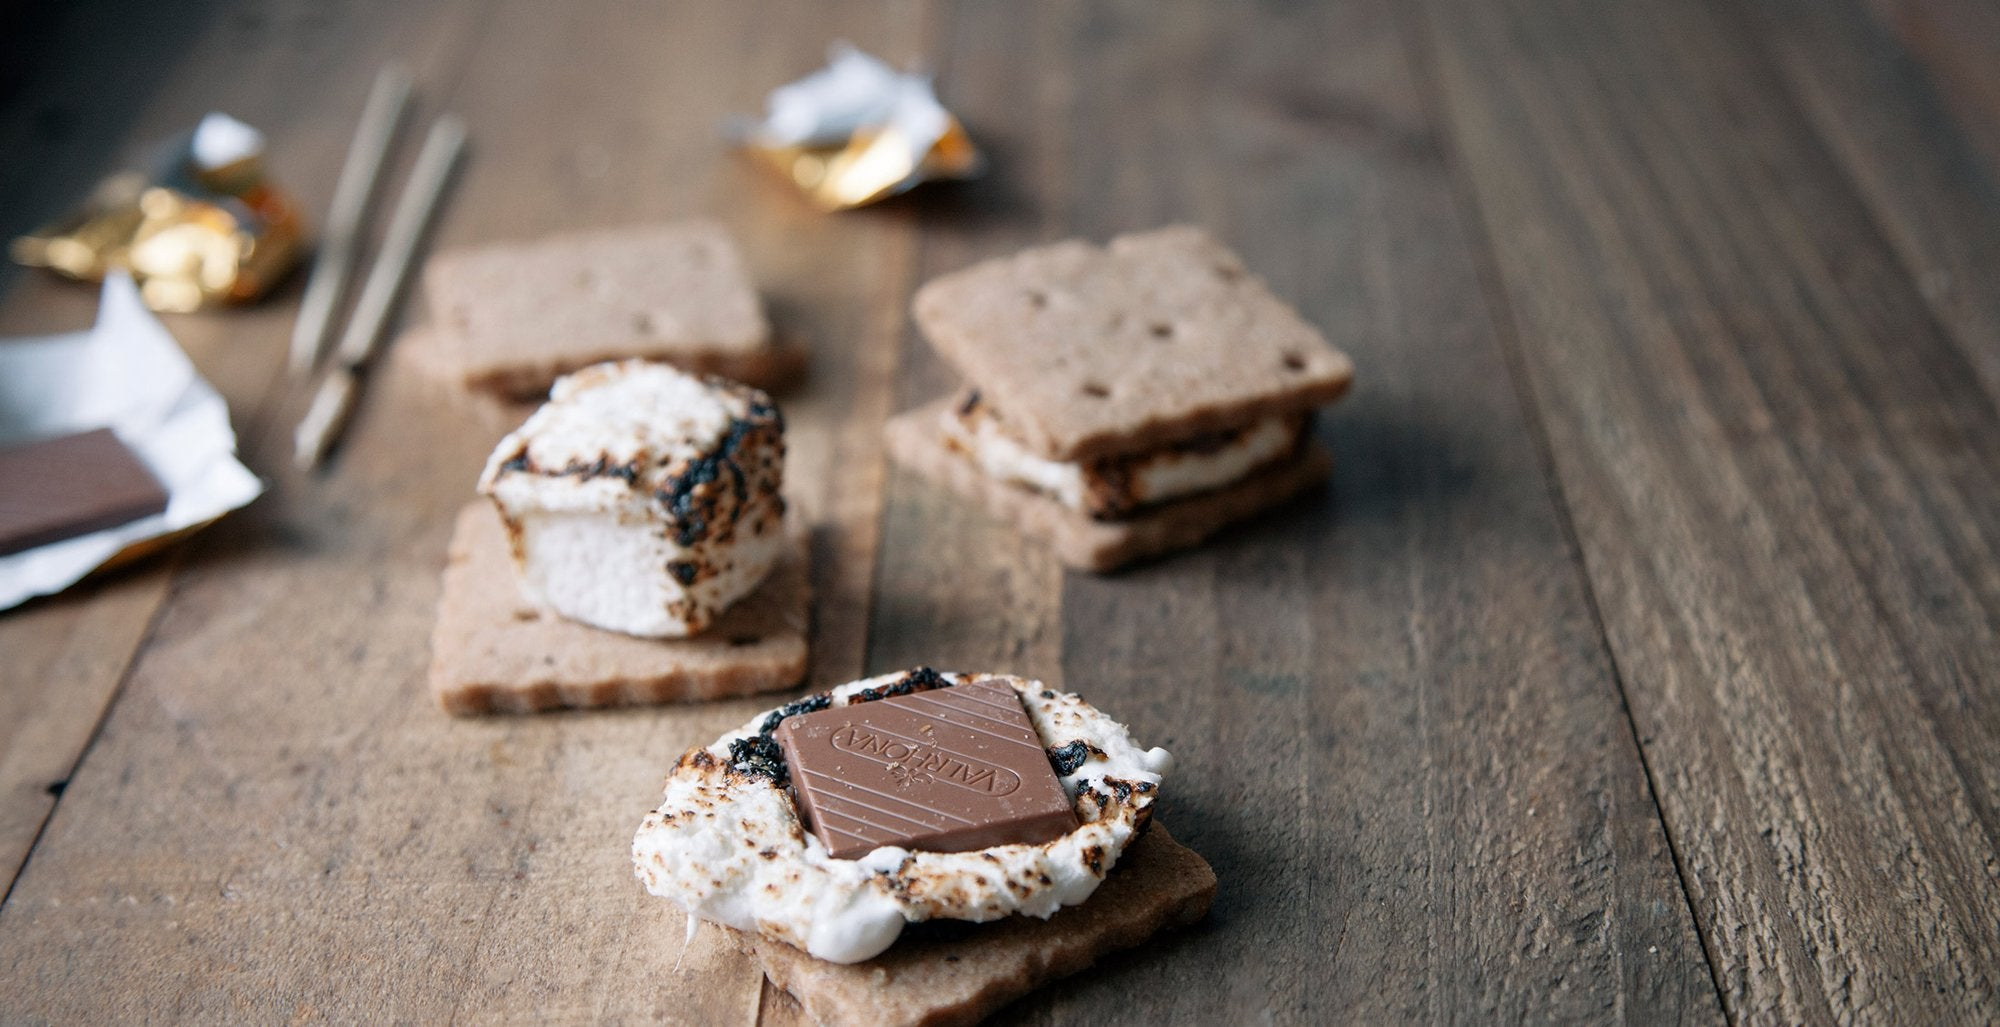 Whimsy & Spice s'mores kit